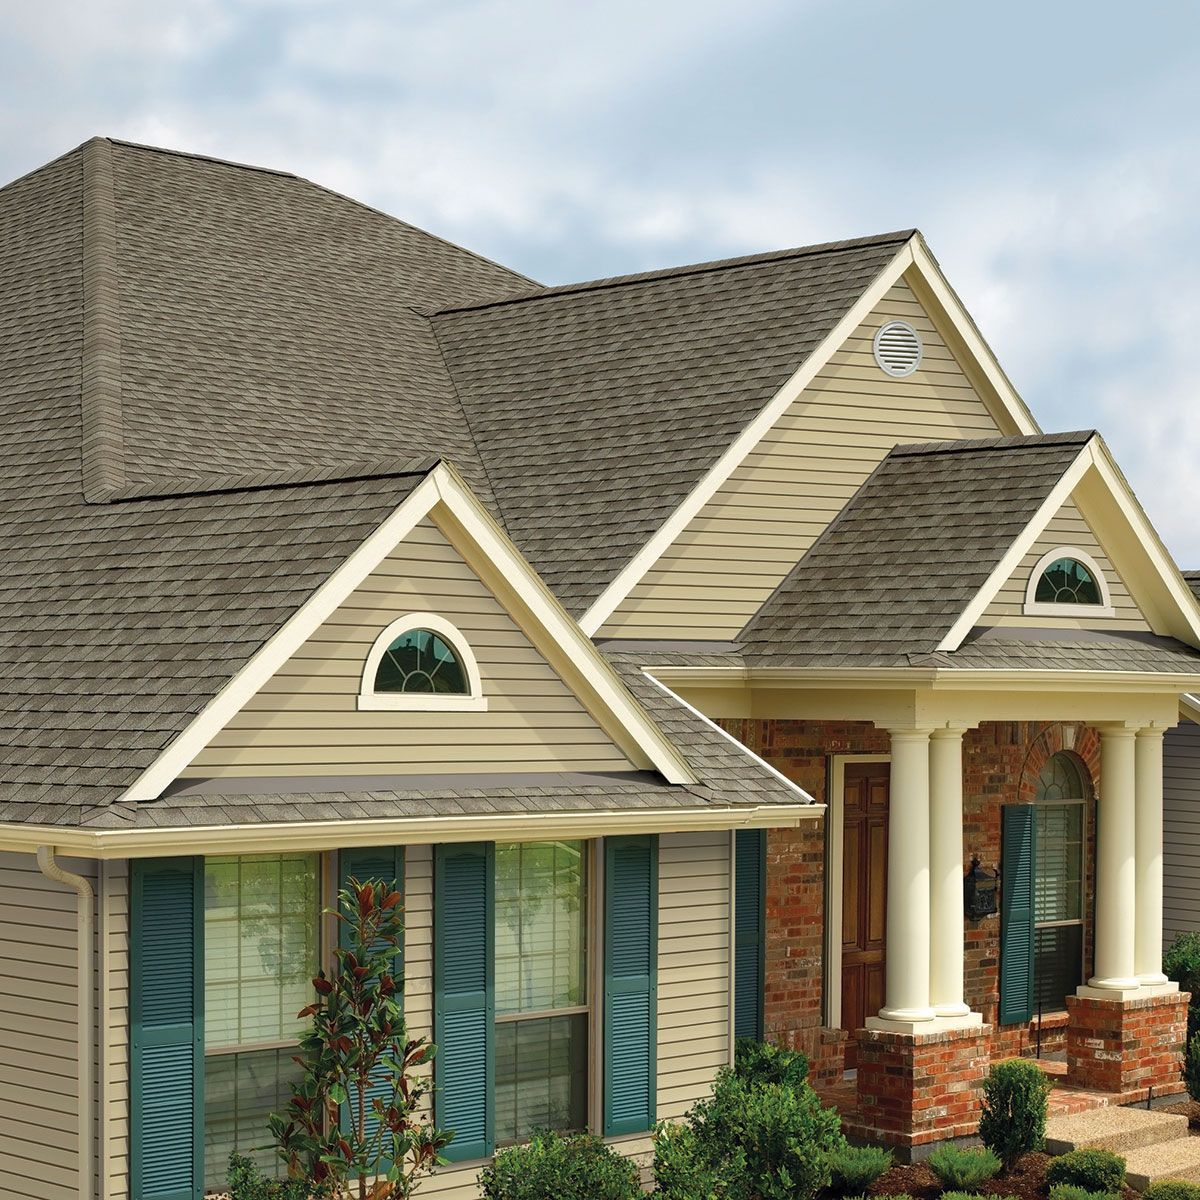 Gaf Timberline Natural Shadow Economy Laminated Shingles